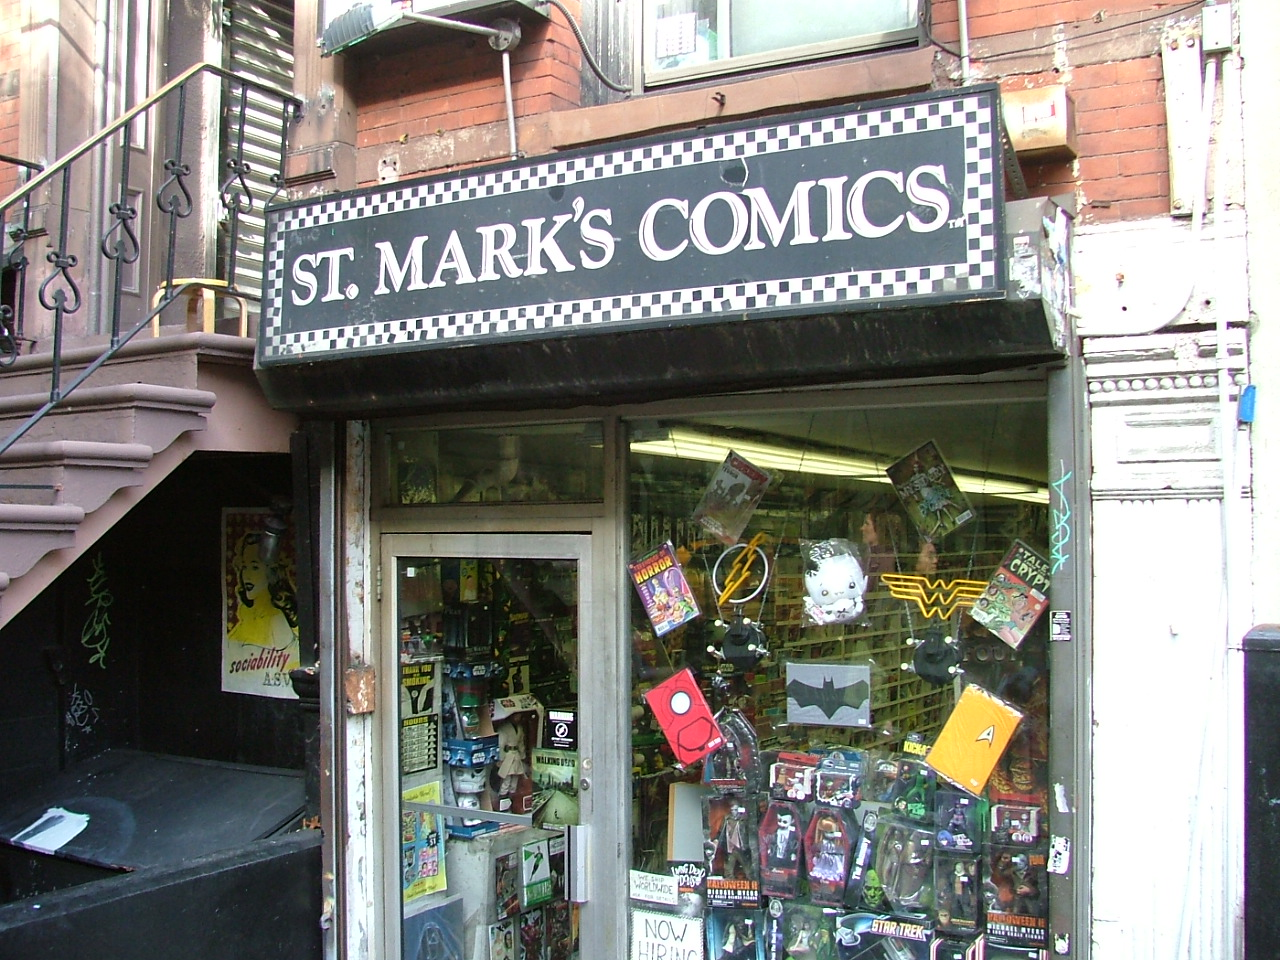 St. Marks Comics is closing after 36 years